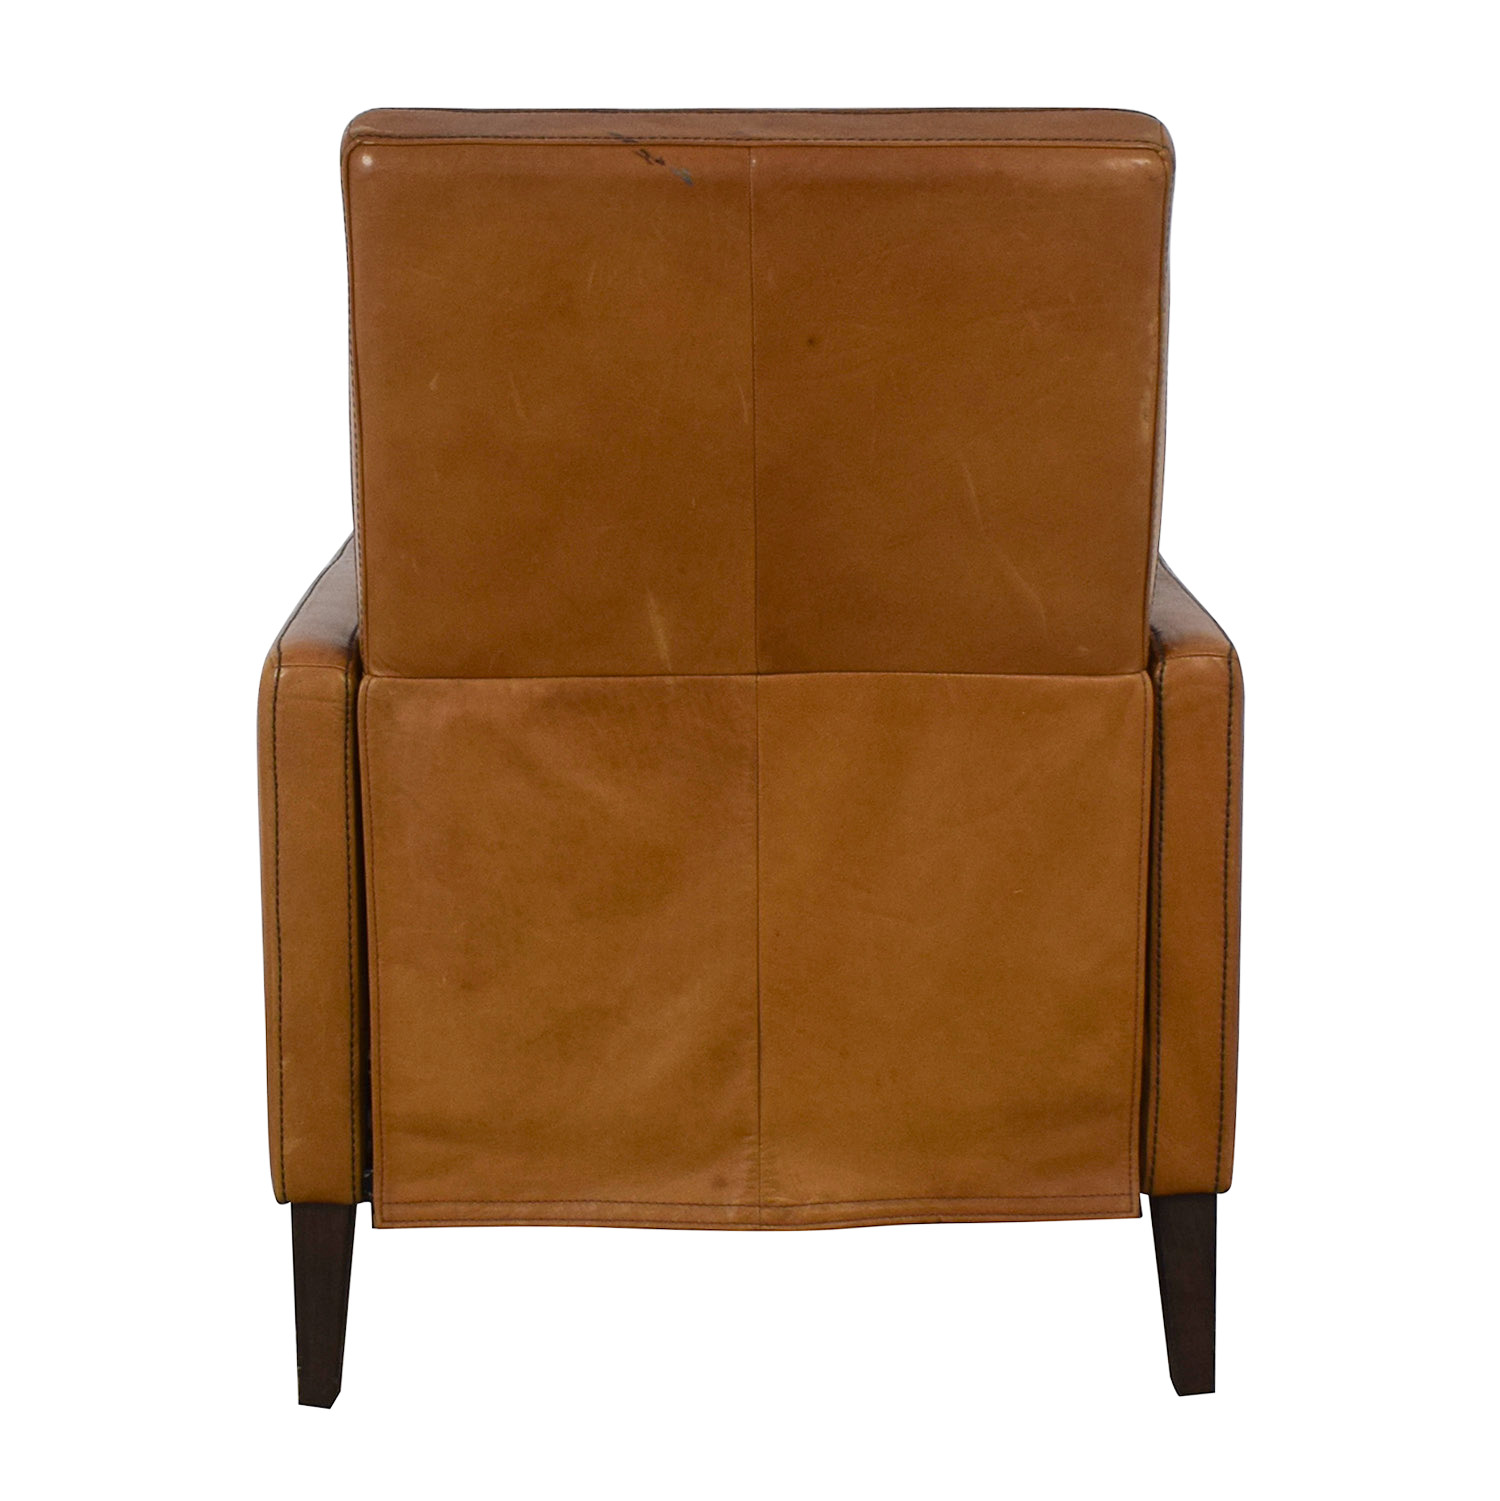 West Elm West Elm Reclining chair discount